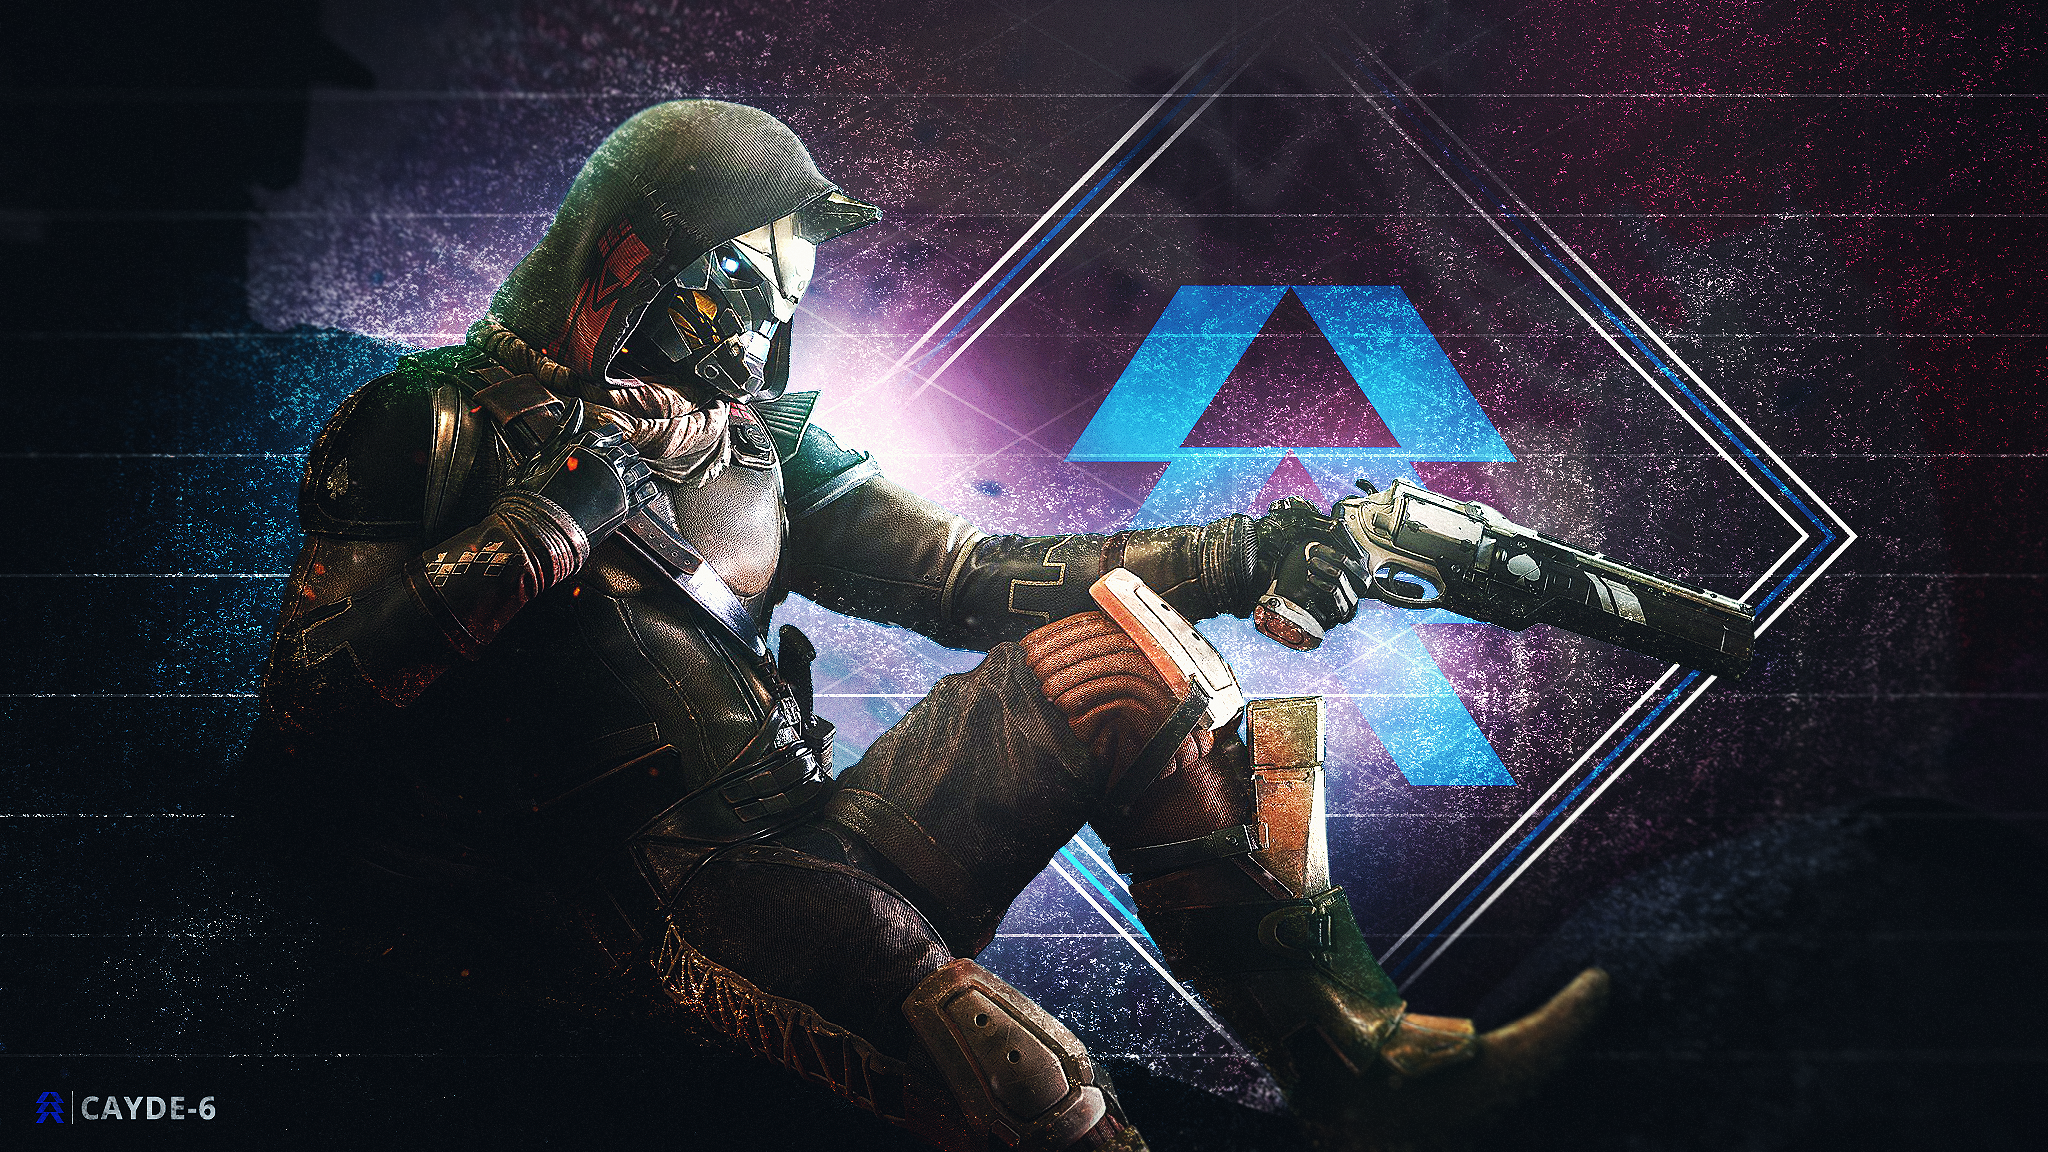 Cayde 6 Wallpaper Desktop Background Backgrounds Desktop Desktop Wallpaper Wallpaper